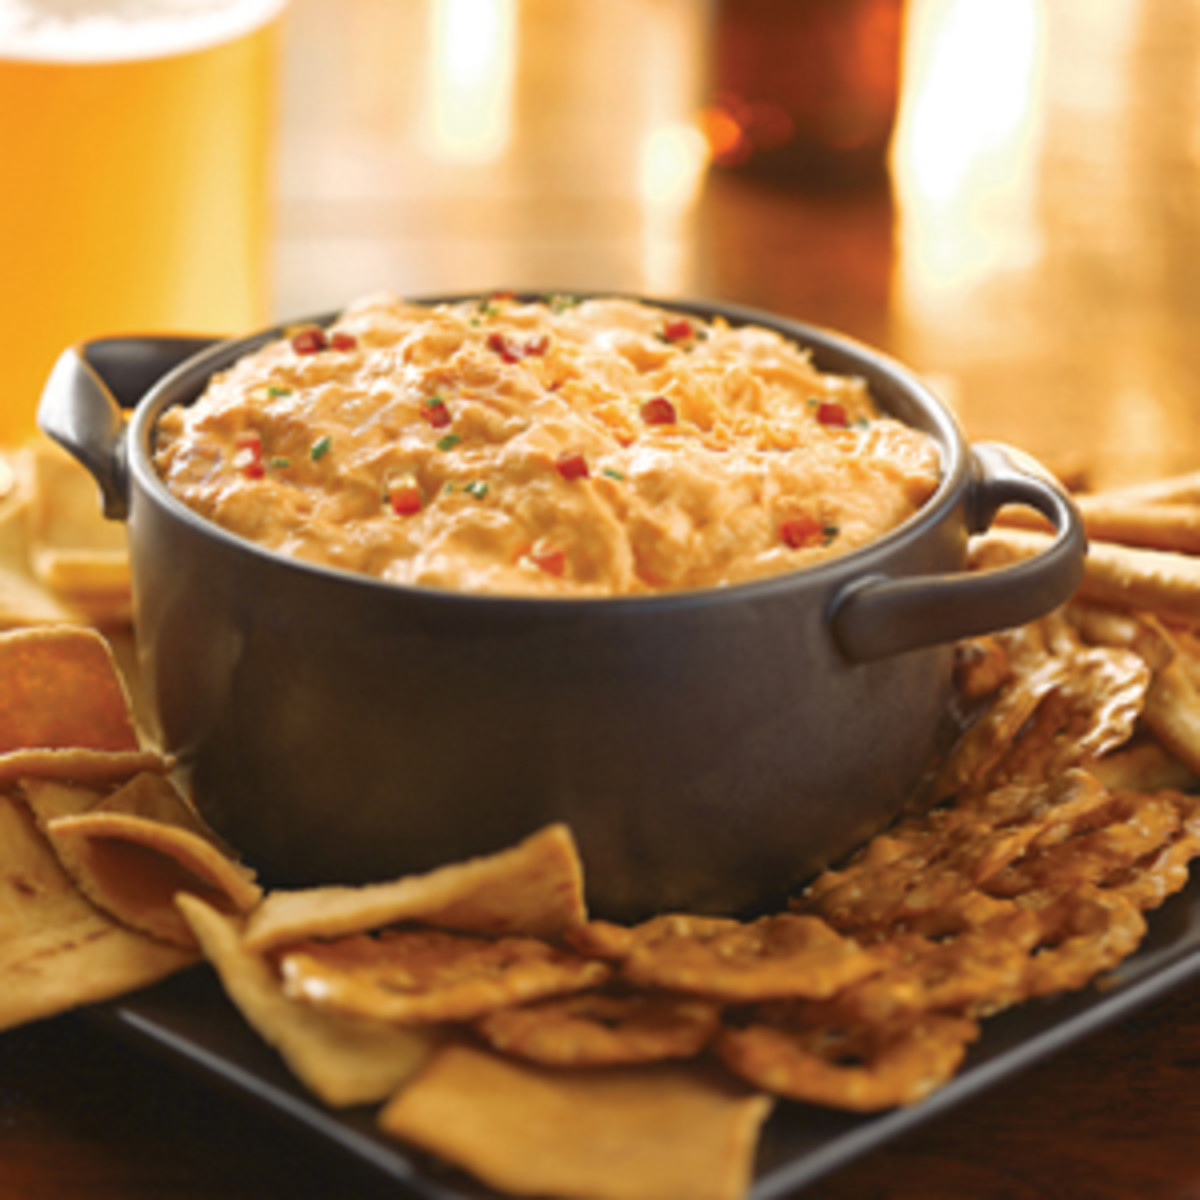 My absolute favorite snack for trivia night: buffalo chicken dip.